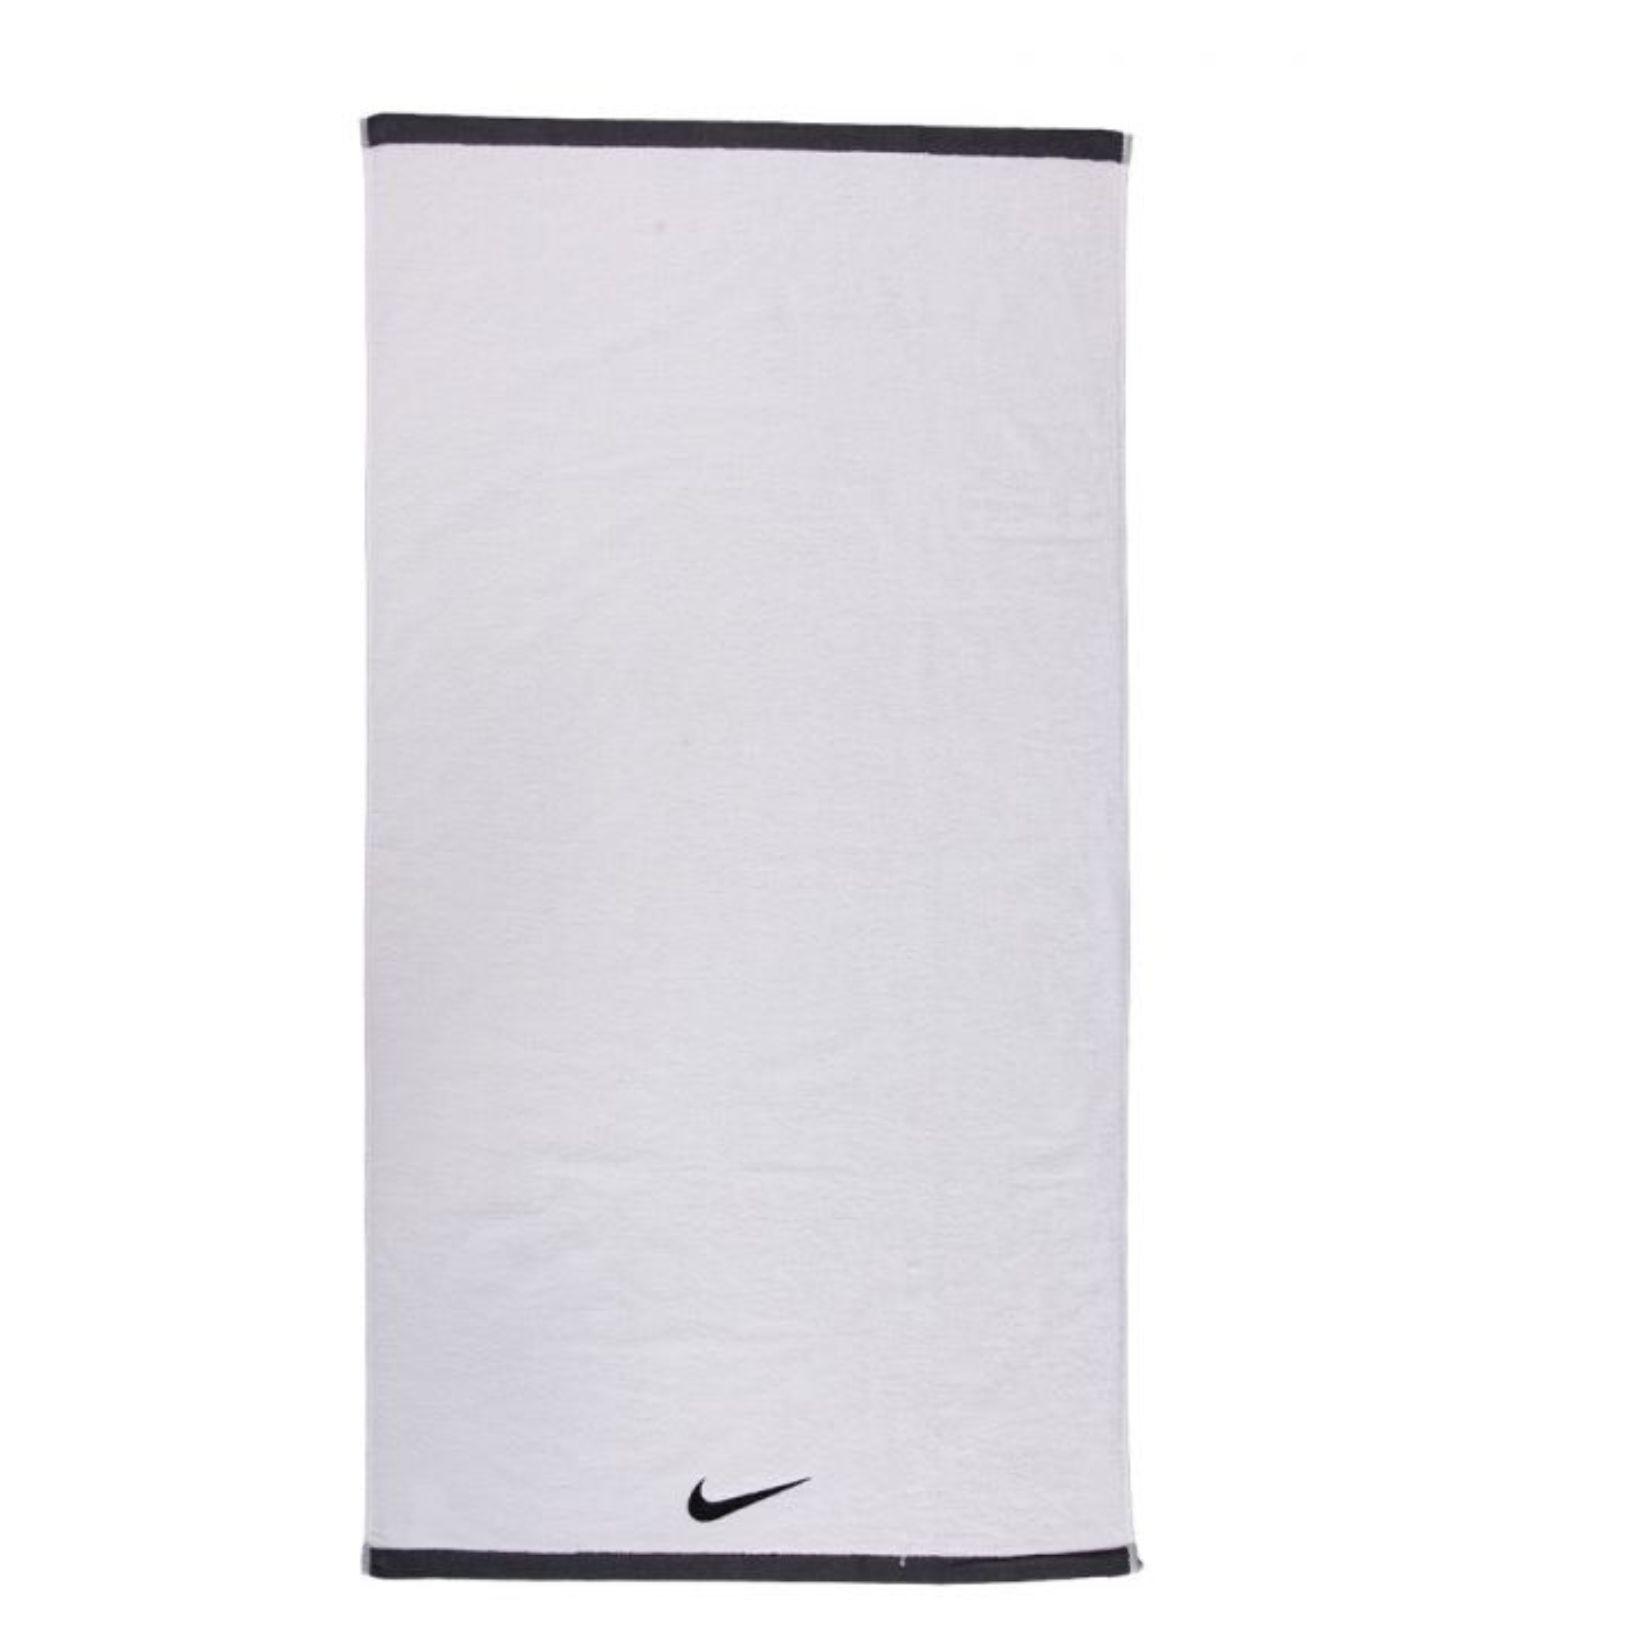 Sportax Nike Fundamental Towel Medium